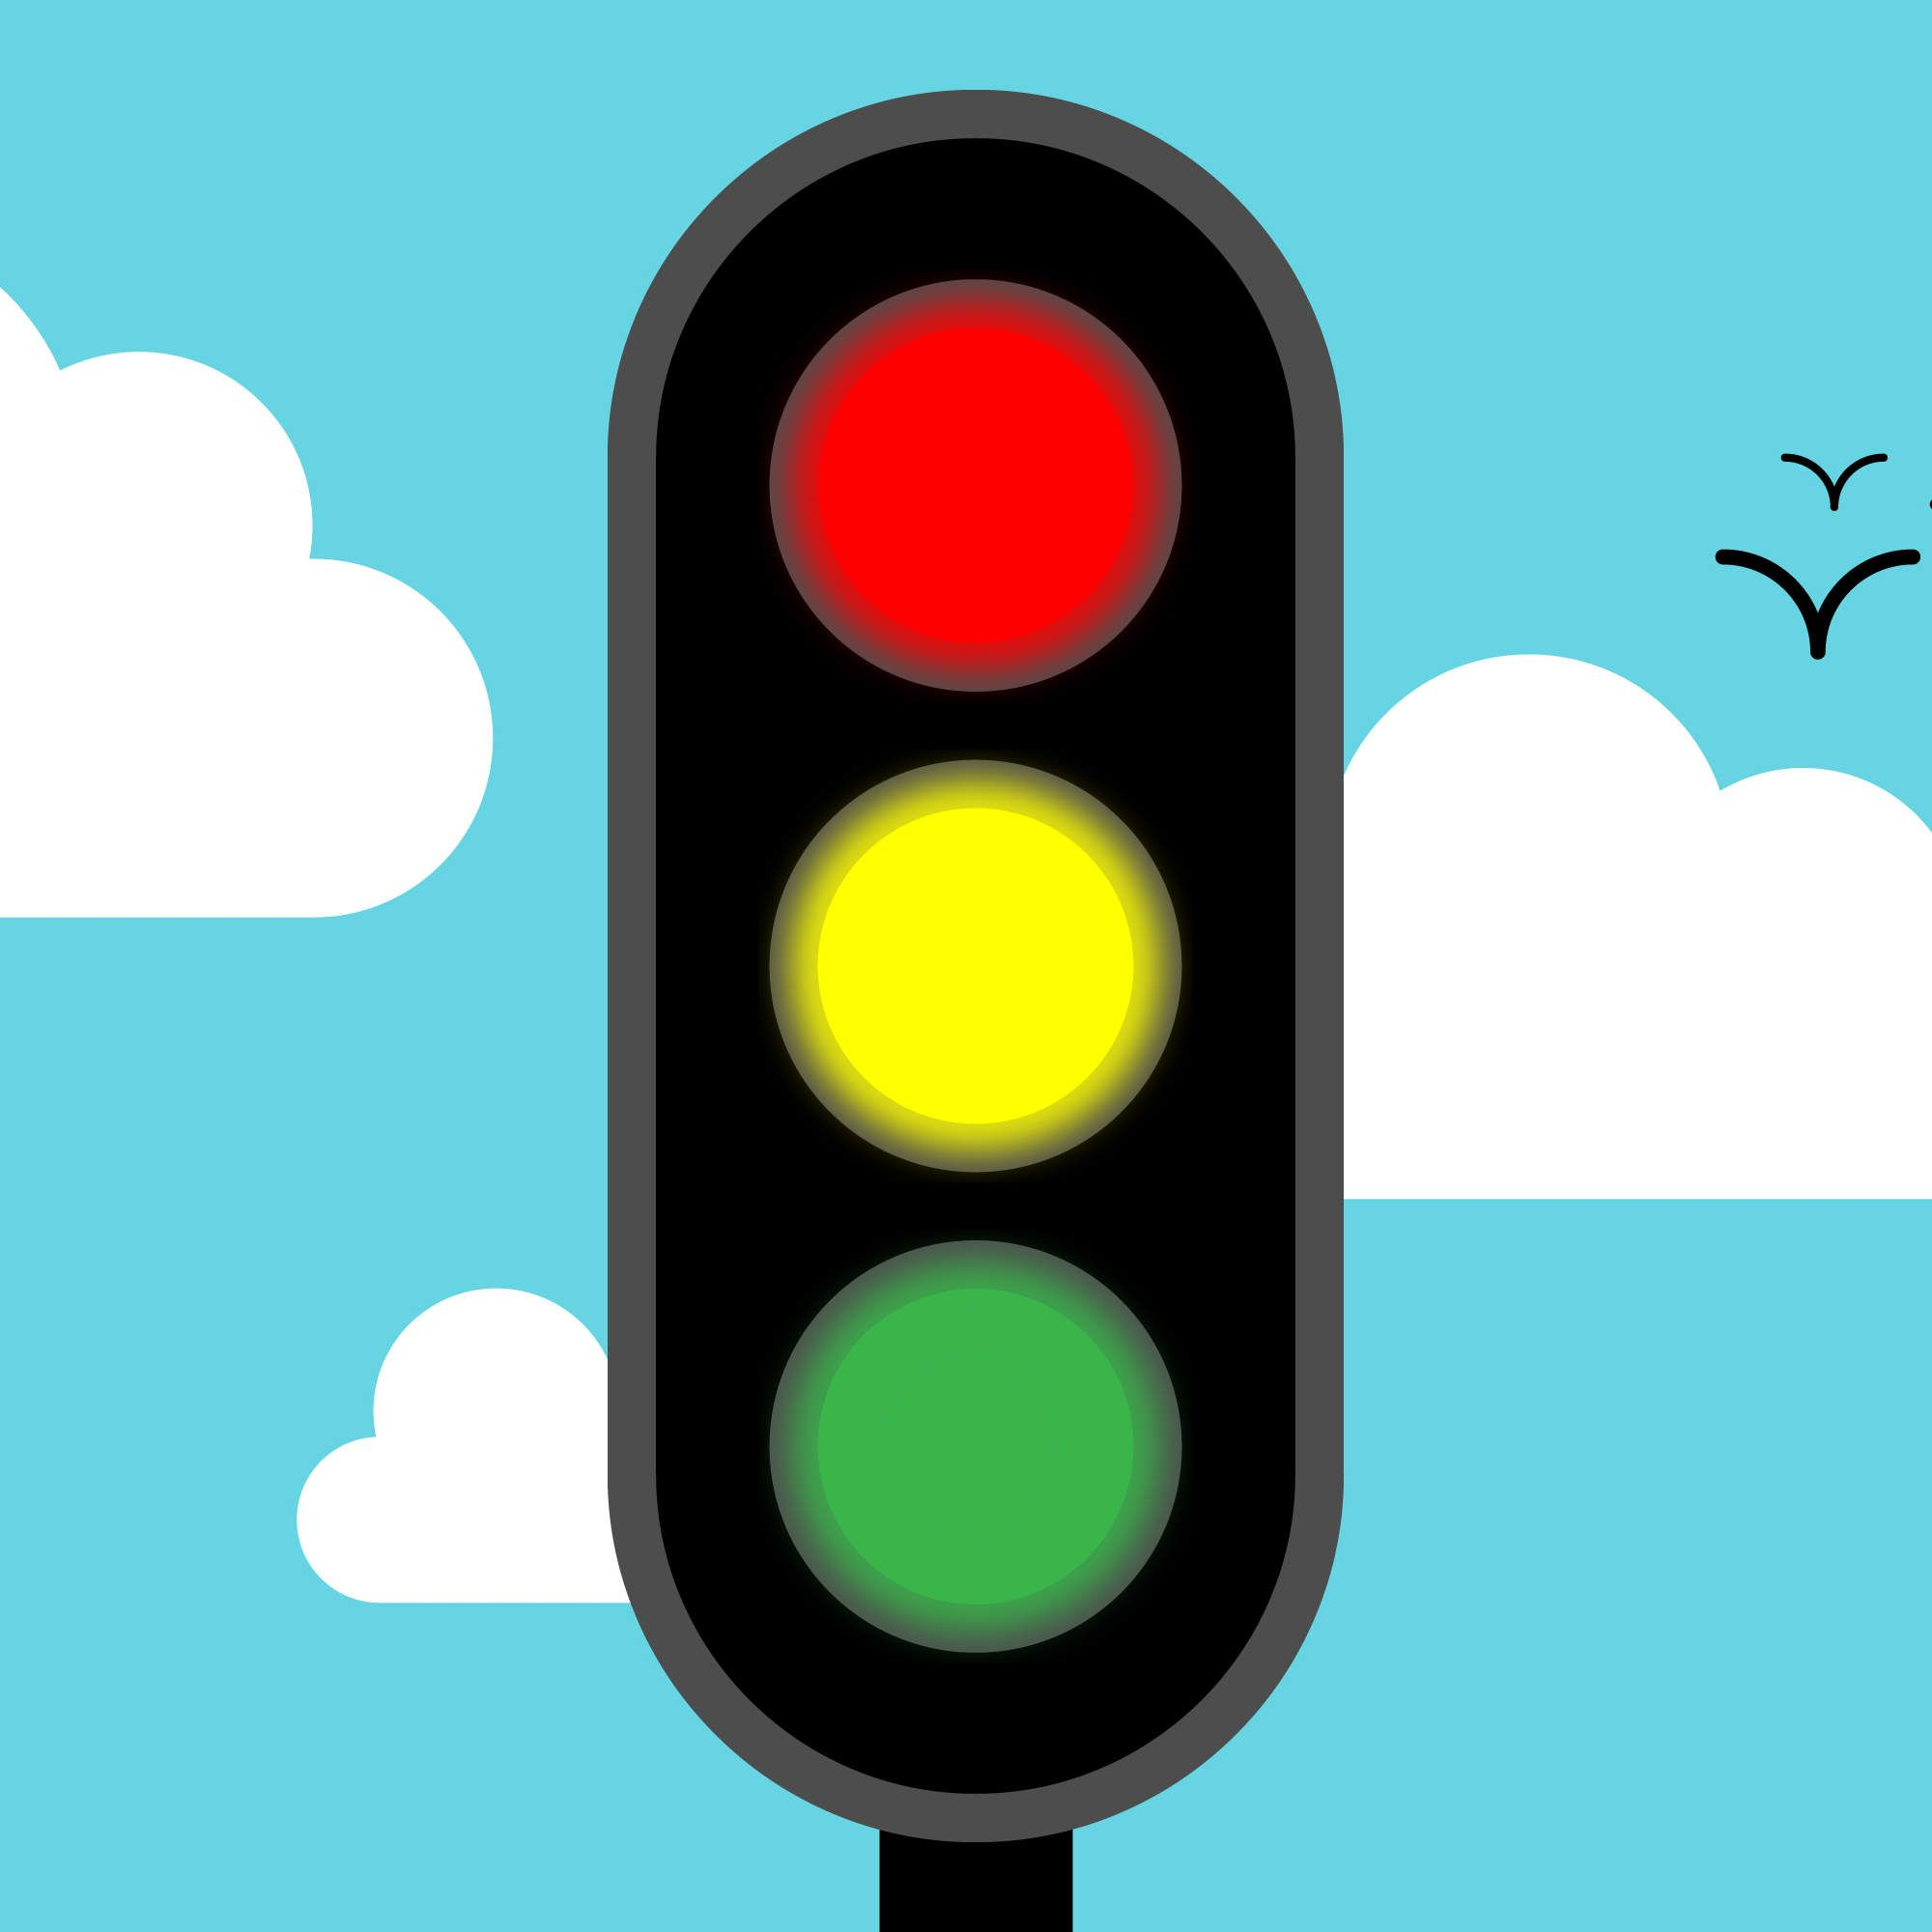 The Reason Traffic Lights Are Red, Yellow, and Green | Traffic light ... for Traffic Light Green Clip Art  66pct